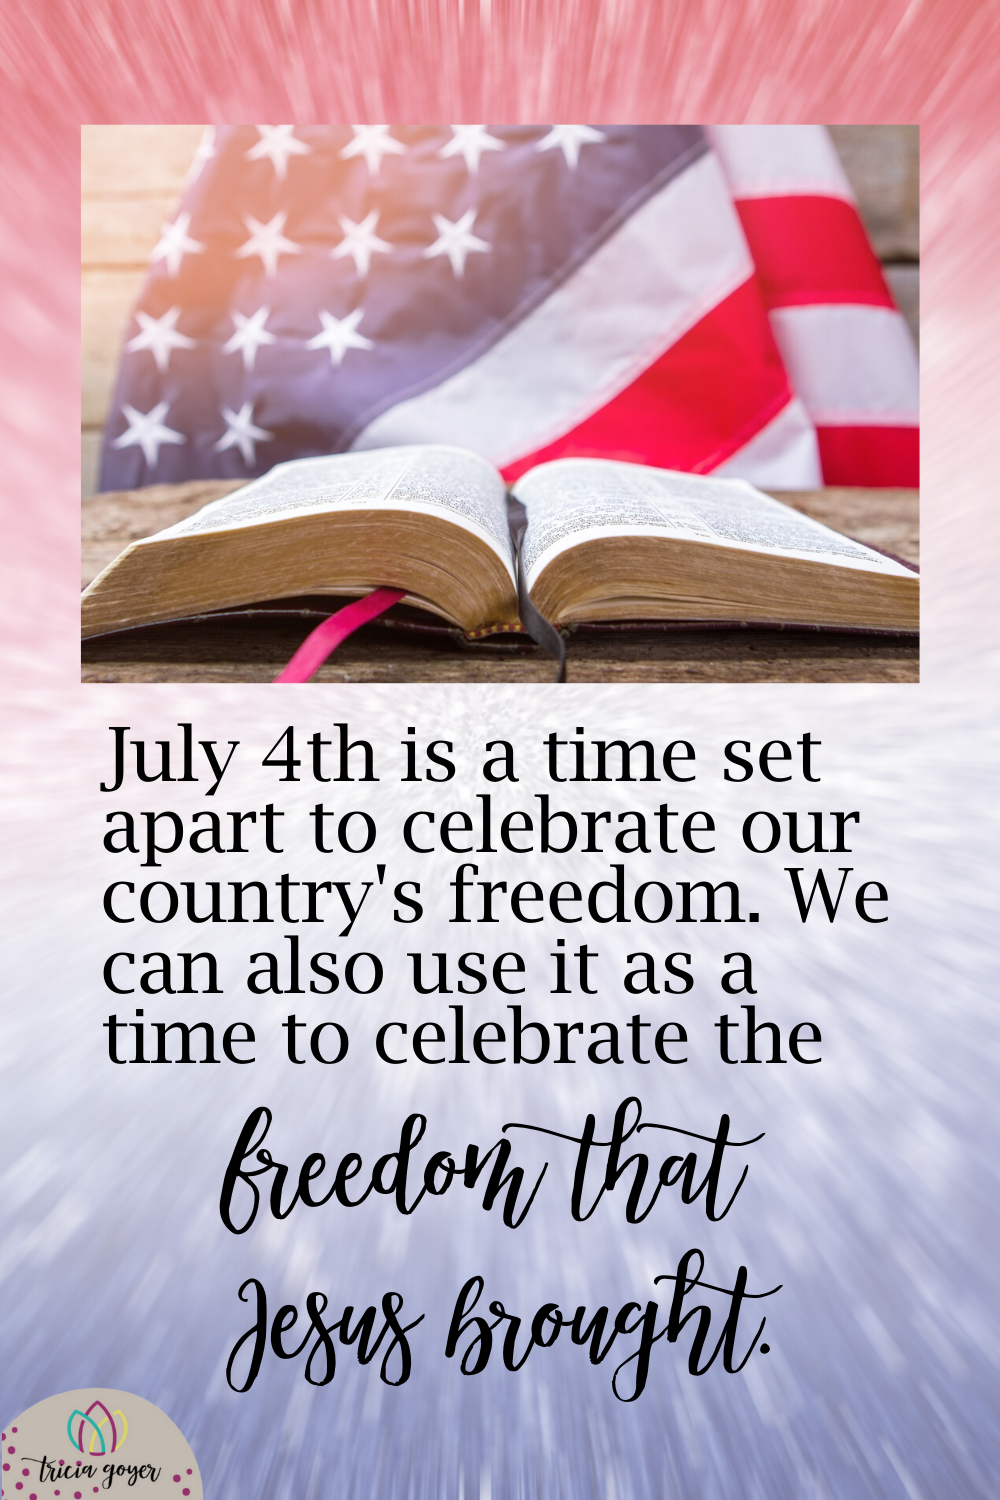 July 4th is a time set apart to celebrate our country's freedom. We can also use it as a time to celebrate the true freedom that Jesus brought.